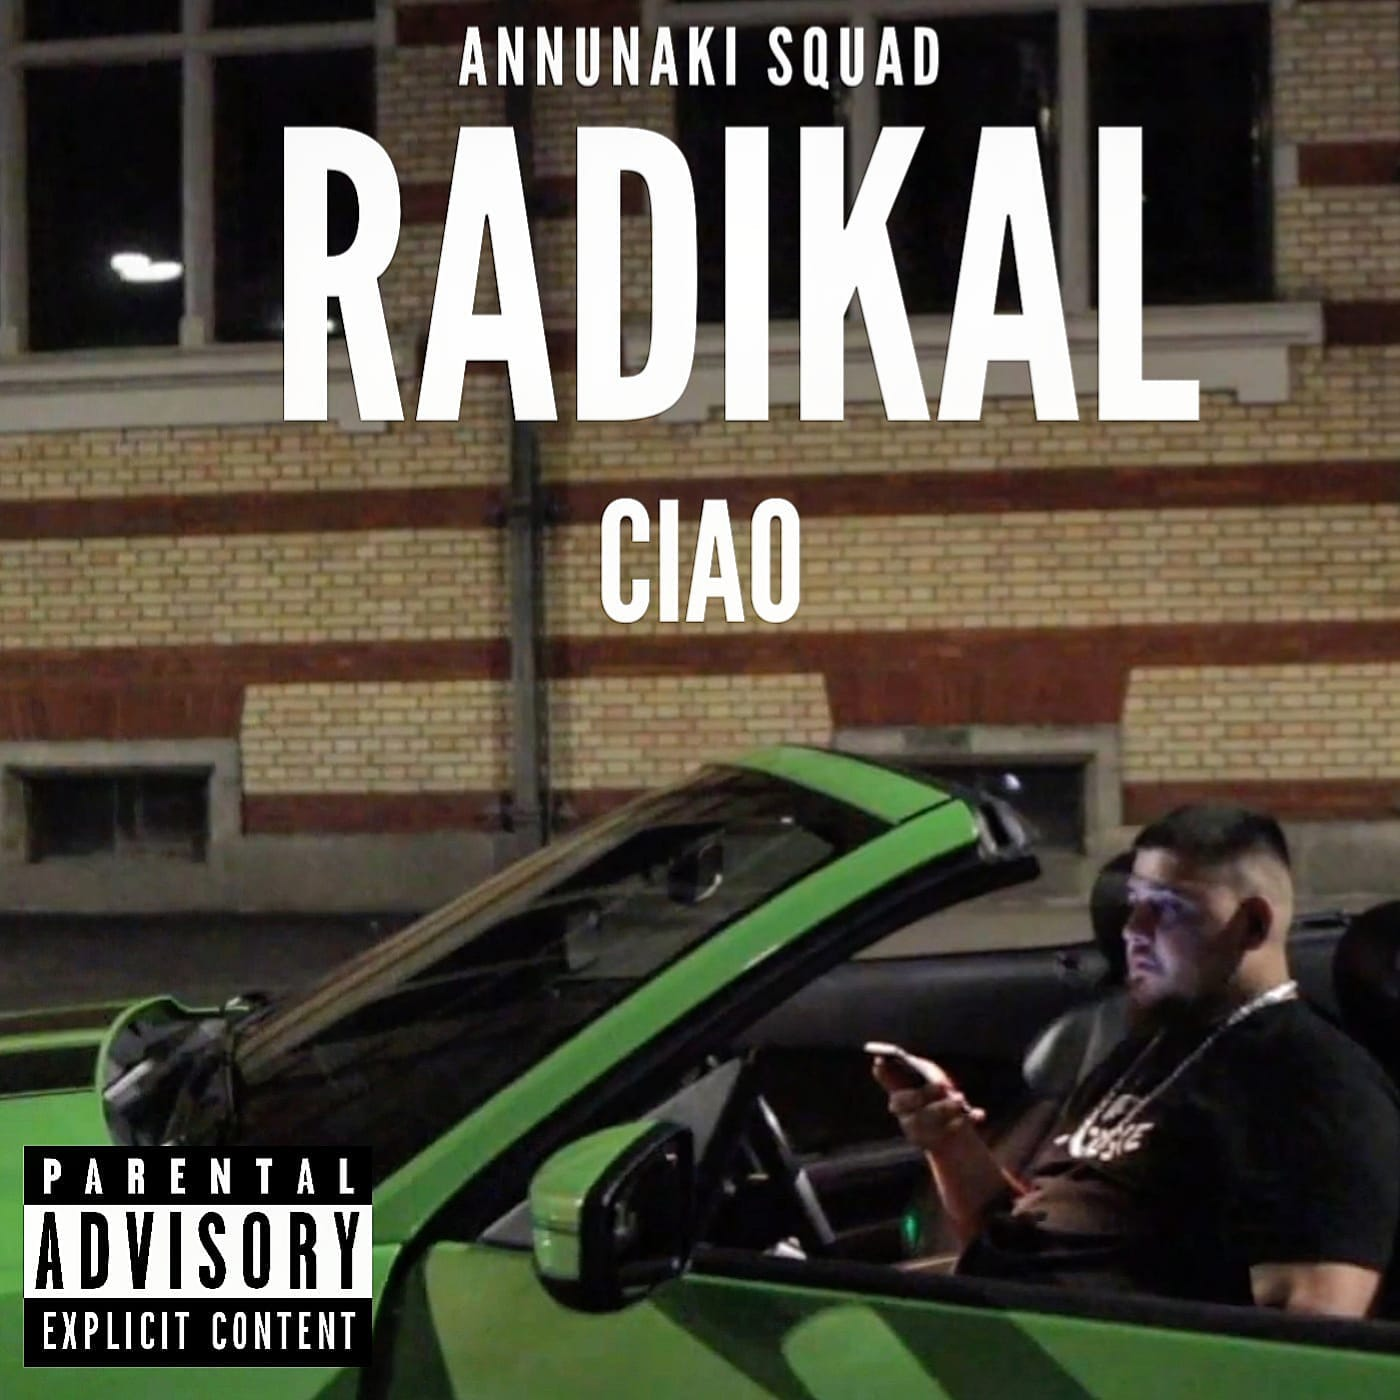 Upcoming: Radikal - Ciao